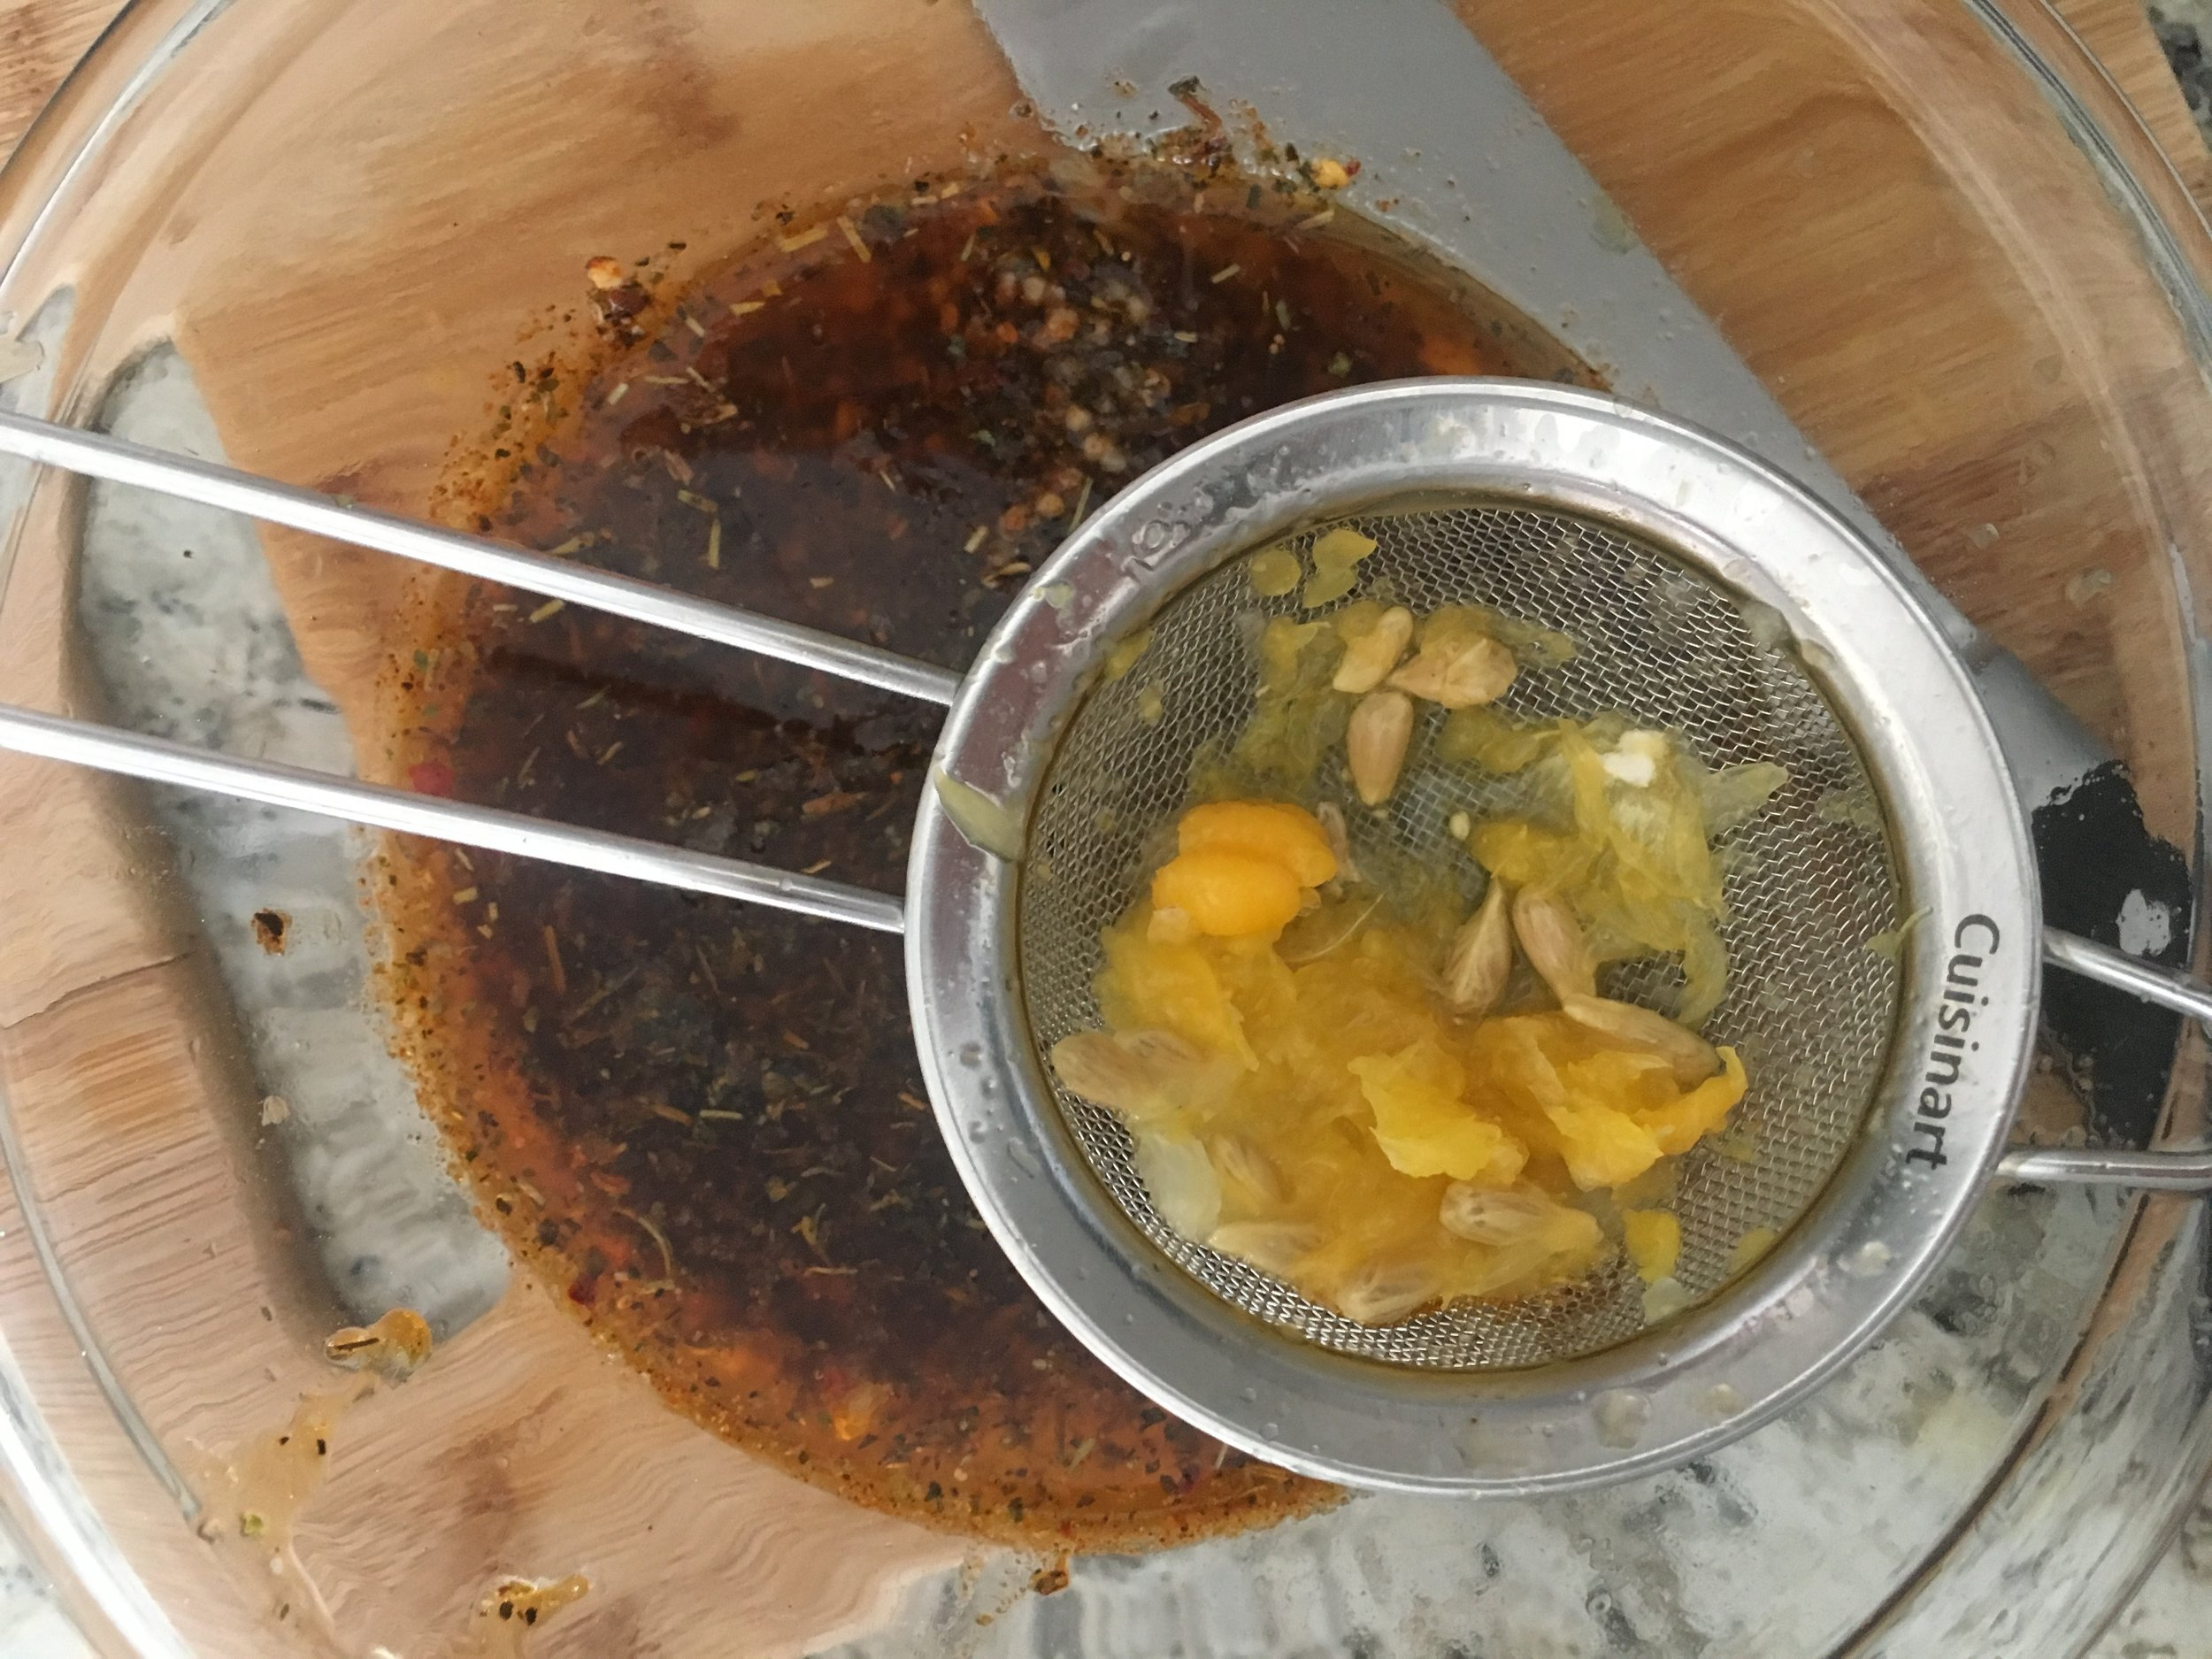 I didn't have a juicer so I used this small strainer to make sure no seeds got into my bowl.